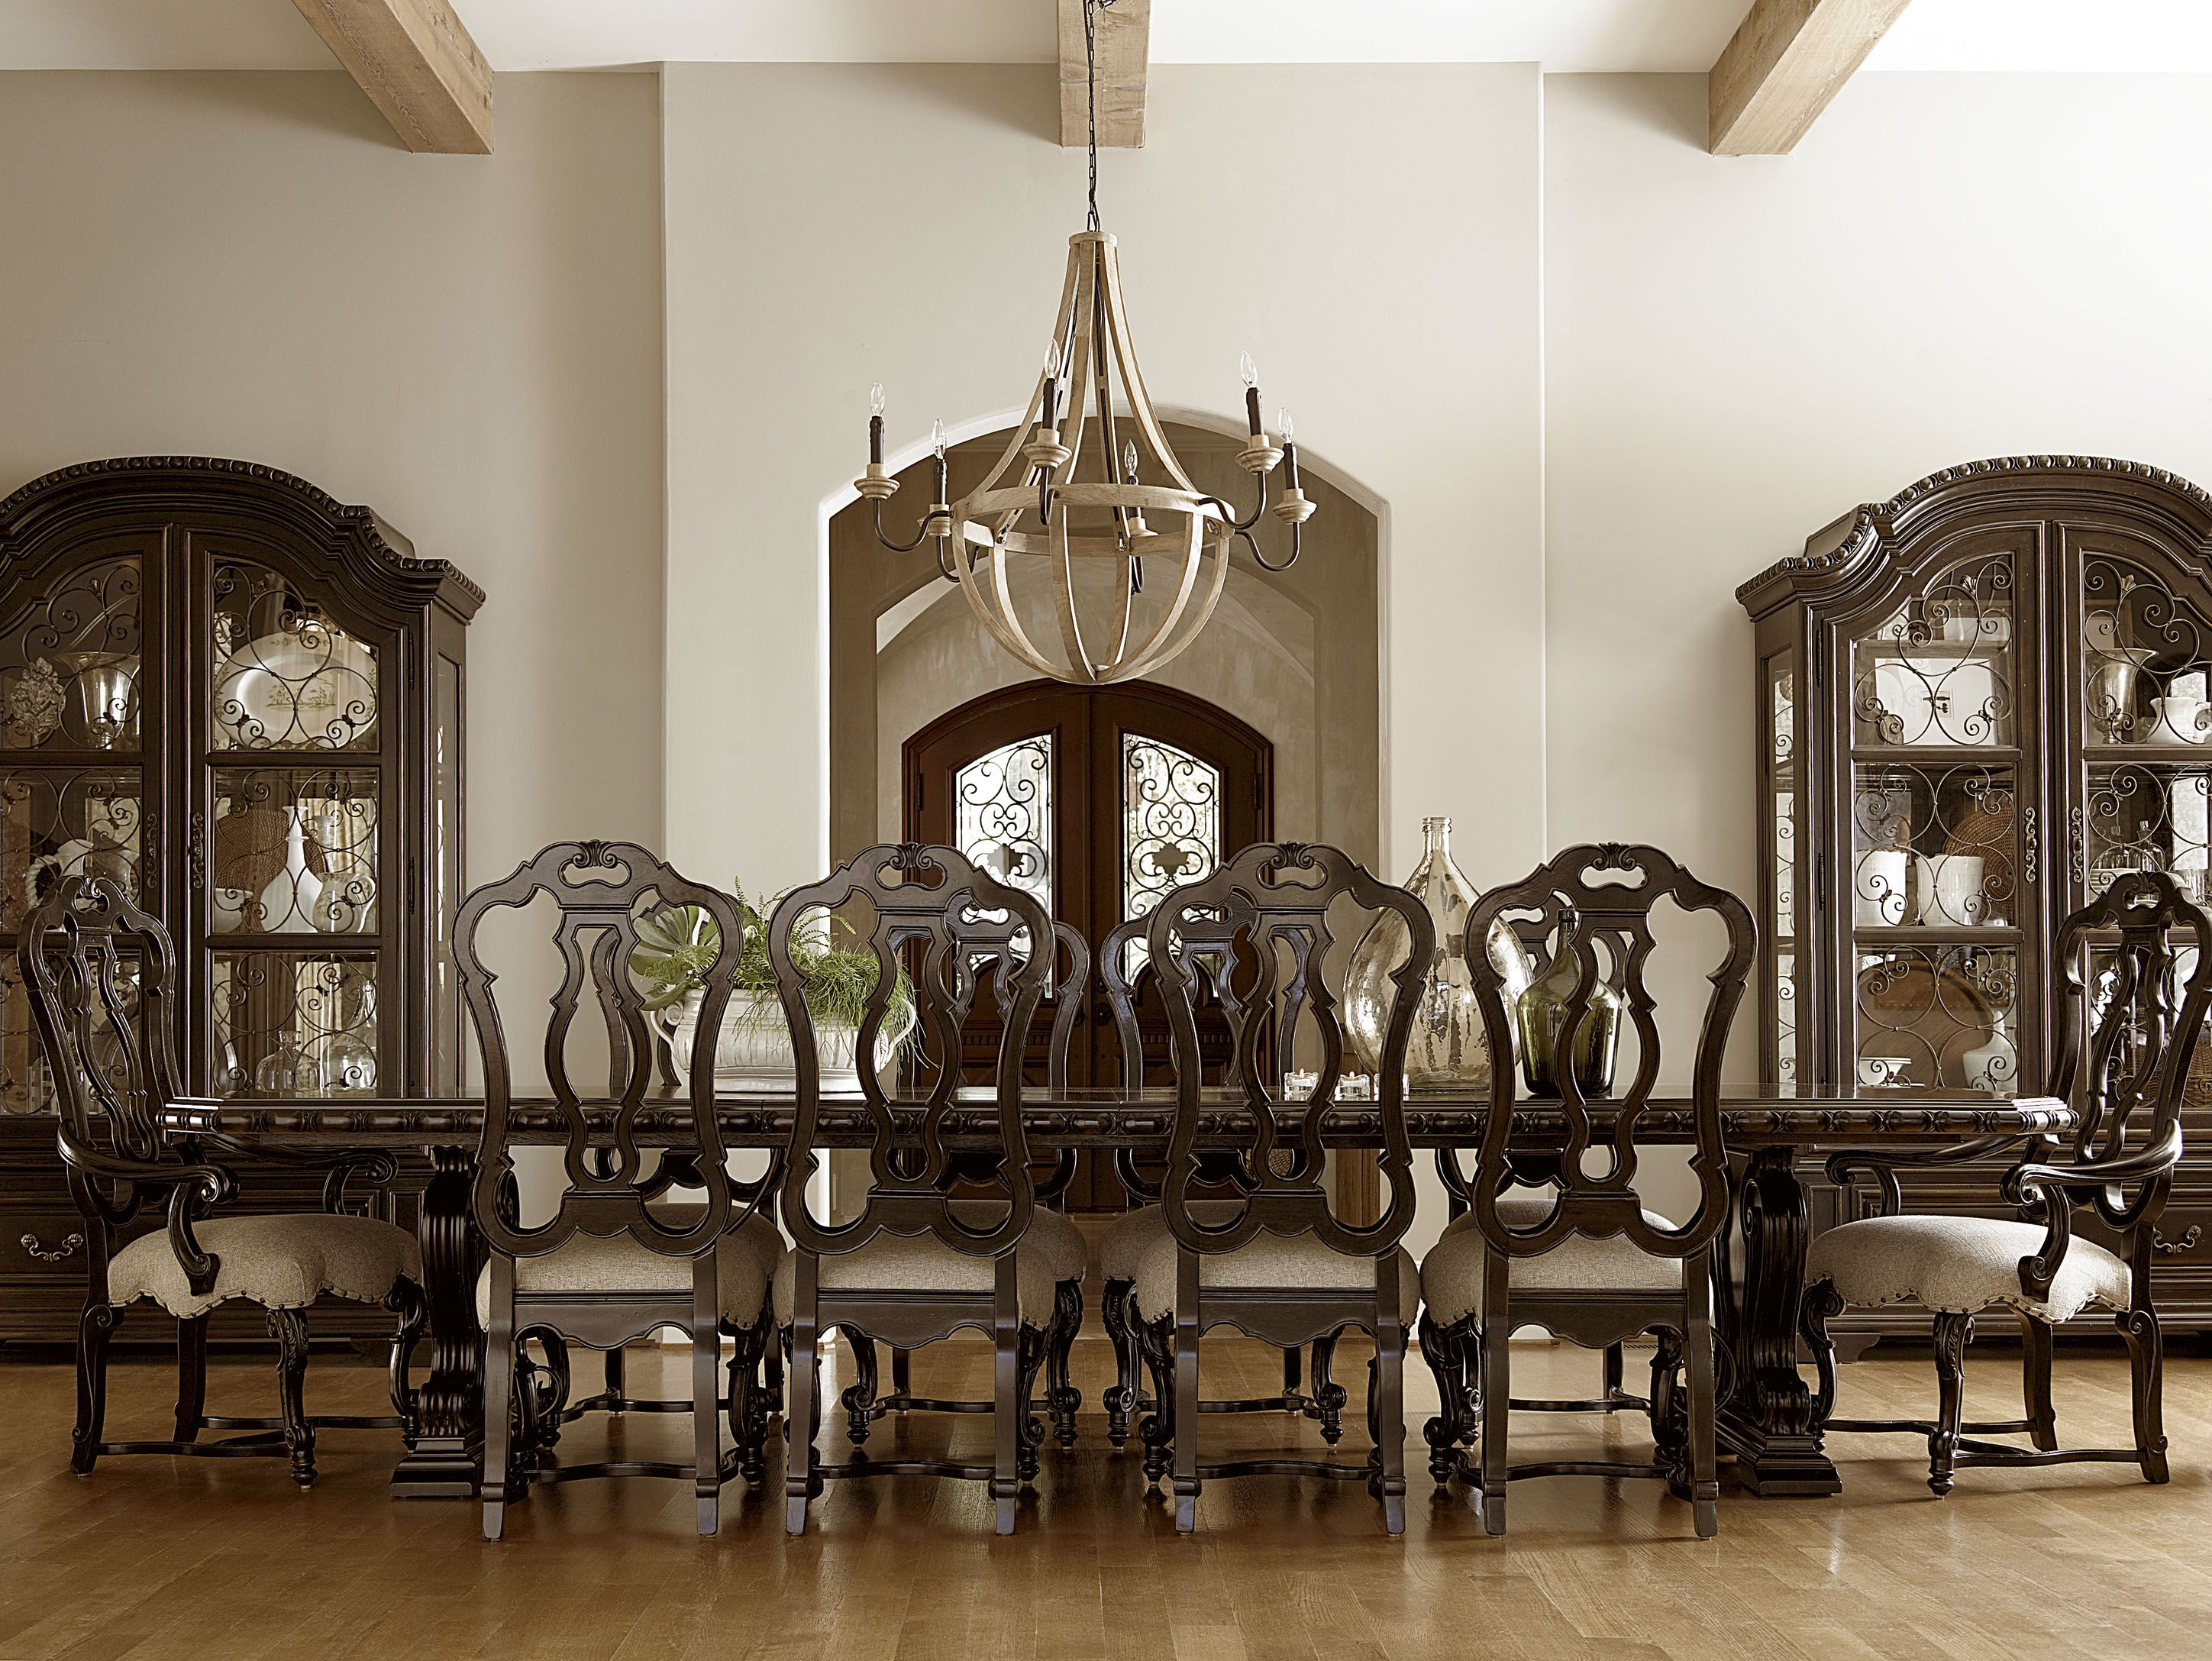 11 Piece Dining Room Set Upholstered Arm Chair Display Cabinets And Like U On Pinterest